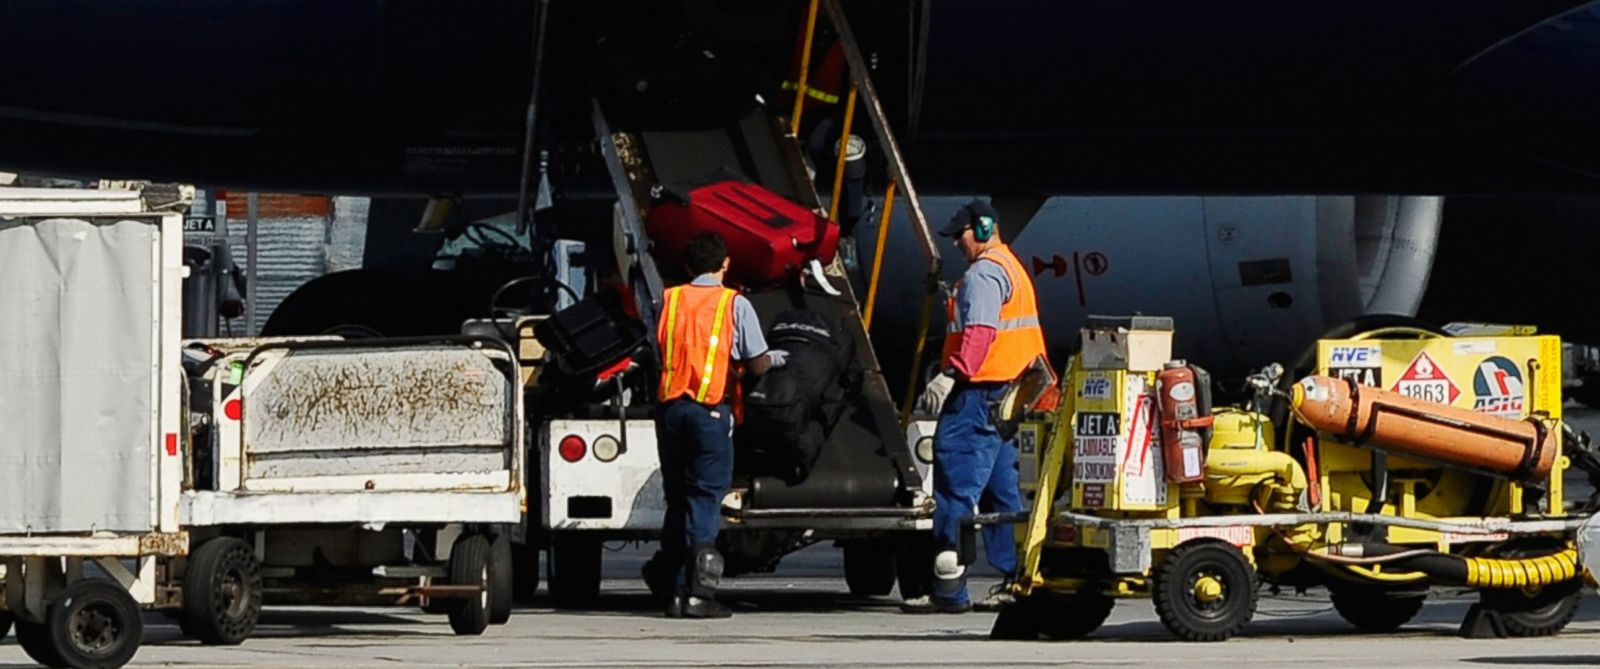 PHOTO: Airline workers load luggage and cargo into a US Airways passenger plane at Los Angeles International Airport on Oct. 30, 2010 in Los Angeles, Calif.